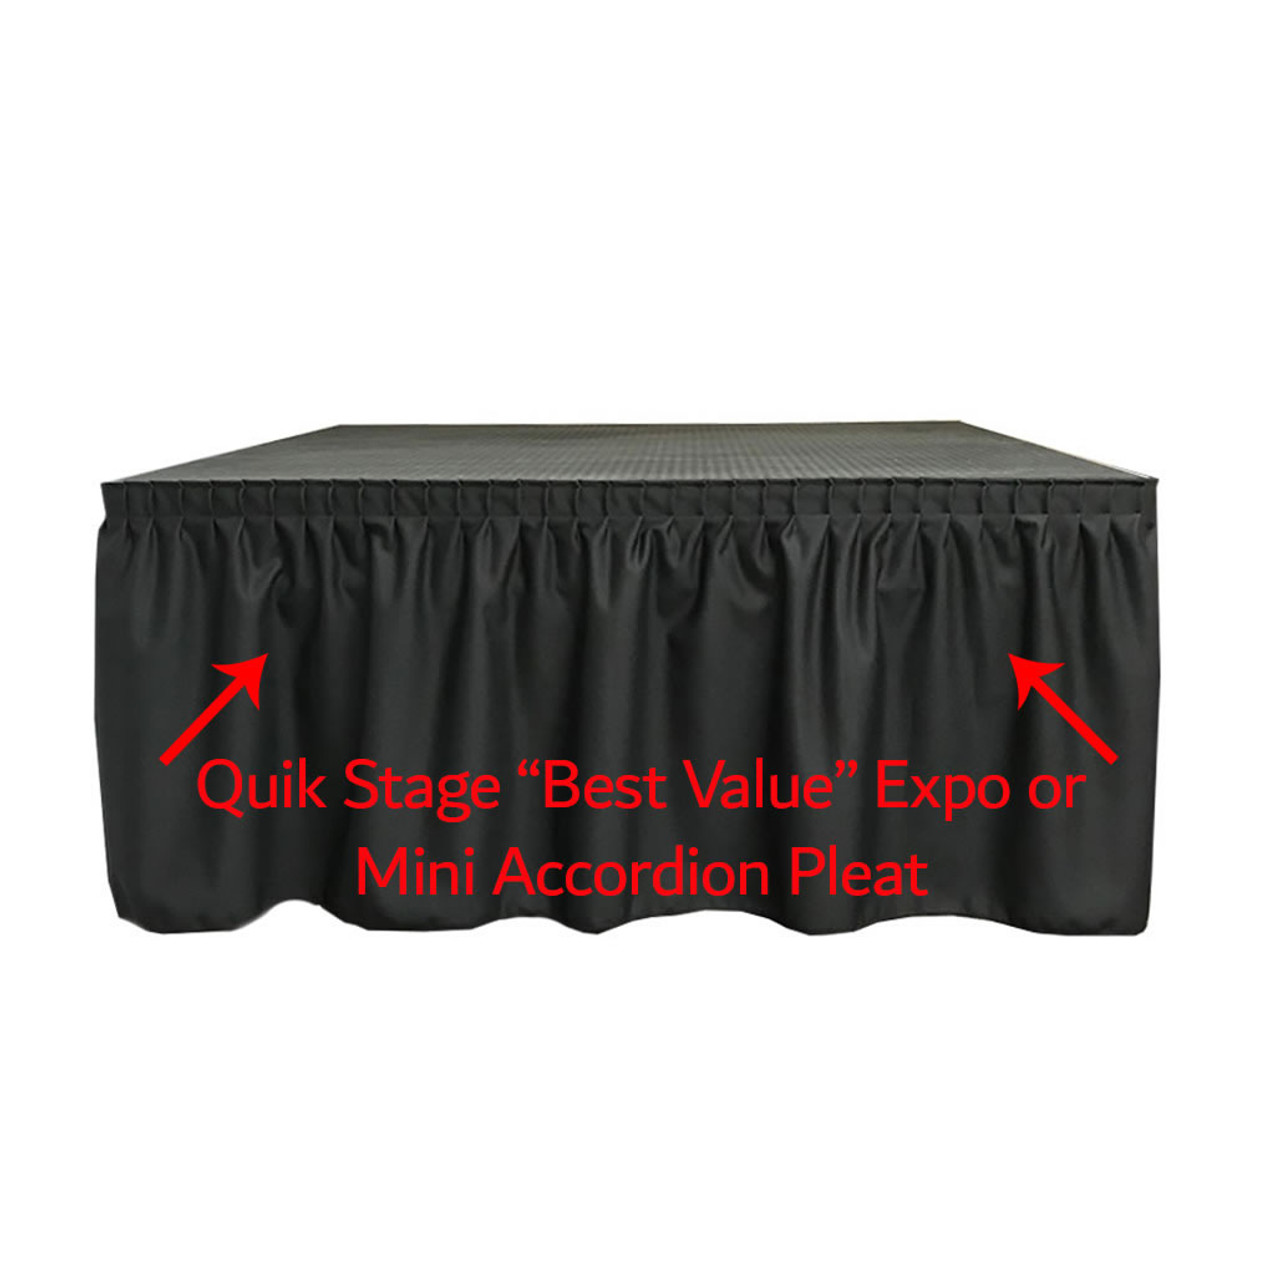 High Quality Quik Stage 12' x 24' High Portable Stage Package with Black Polyvinyl Non-Skid Surface. Additional Heights and Surfaces Available - Best Value Expo Pleat Stage Skirting